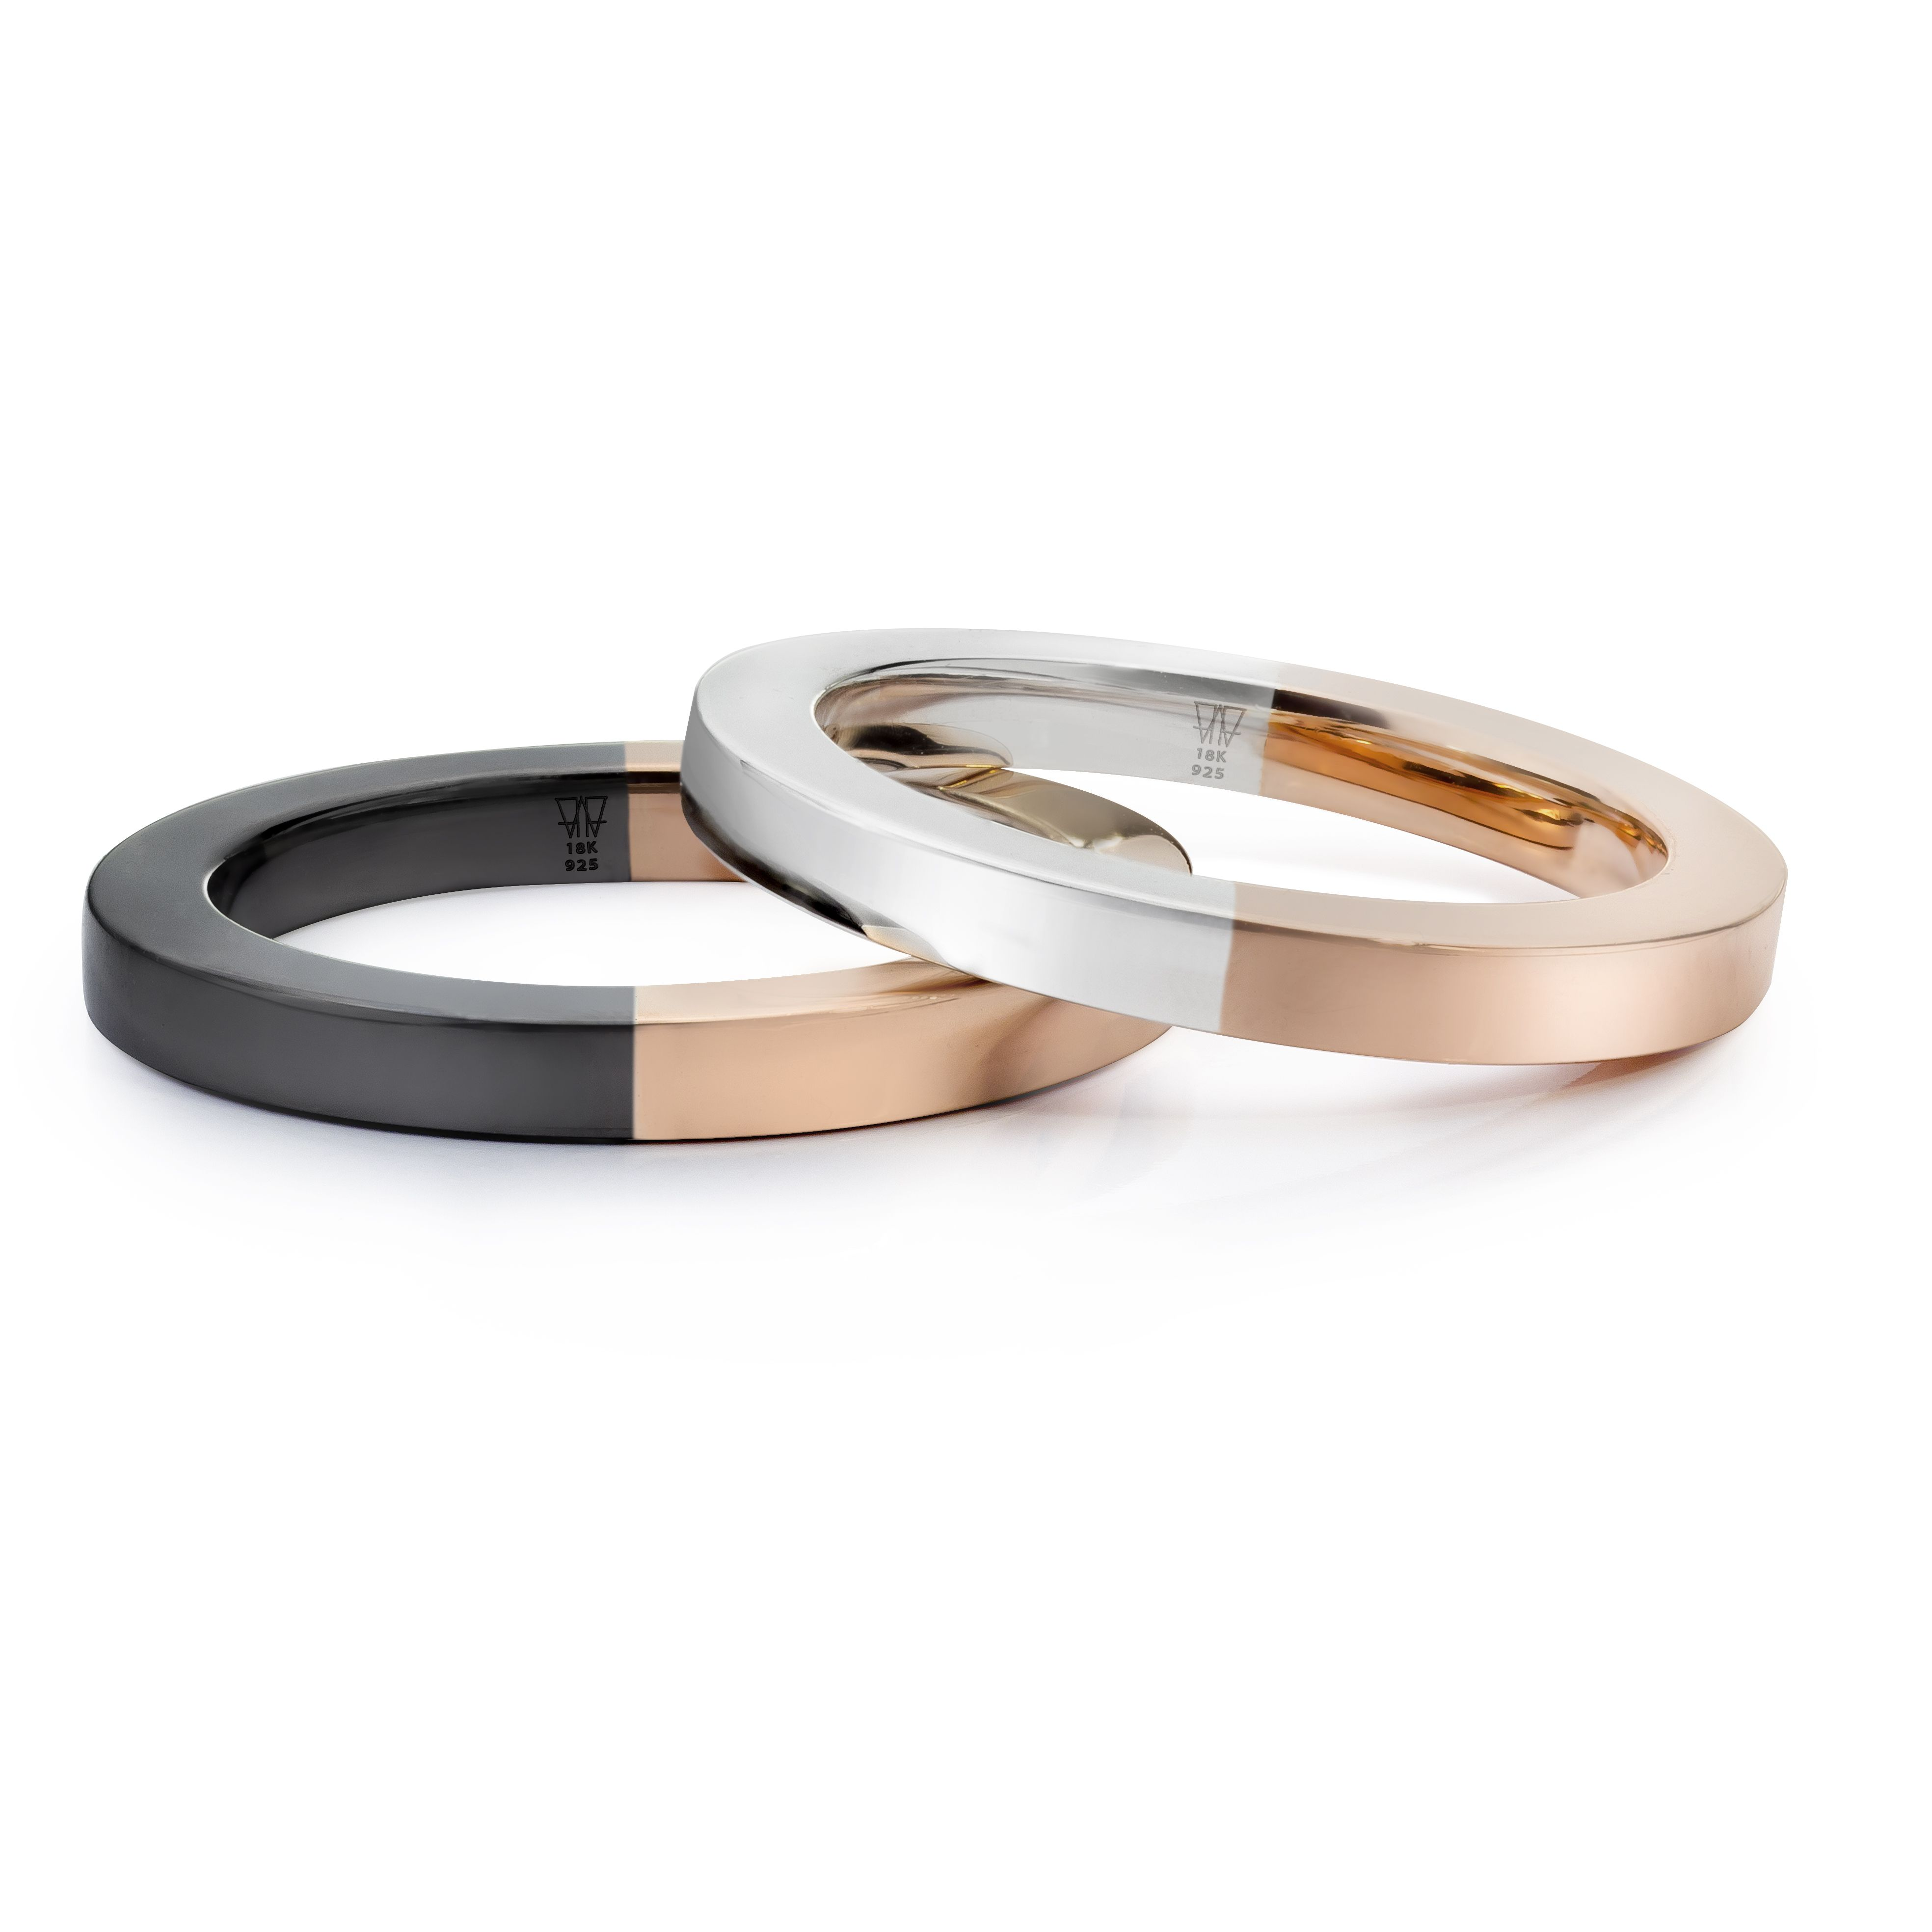 Half 18K Rose Gold and Black Rhodium Plated Sterling